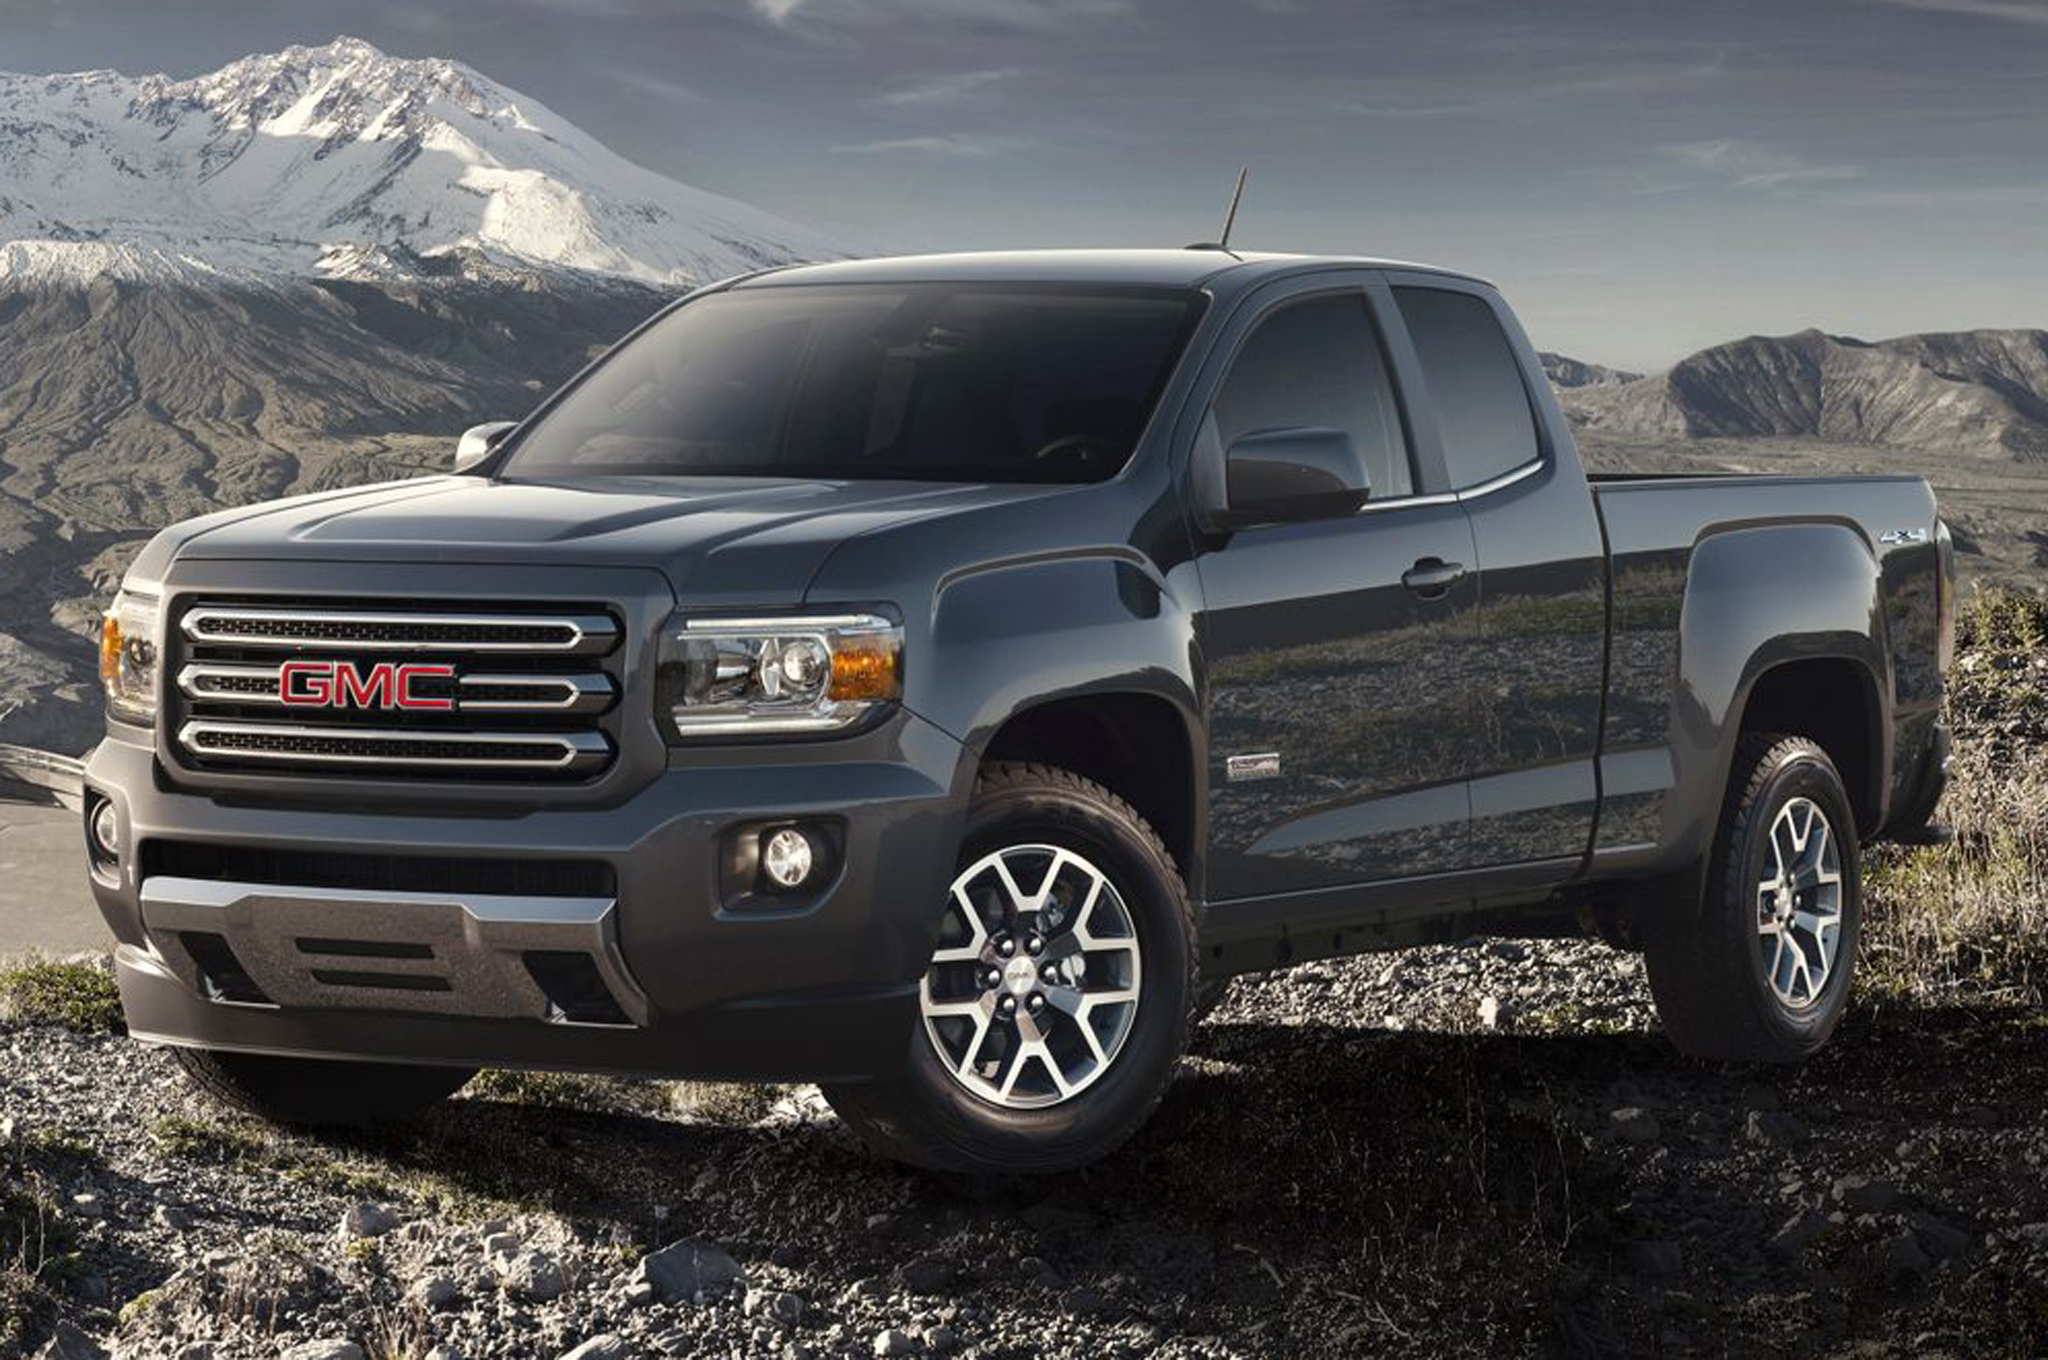 do a gmc auto canyon truck small roadshow s multitool review all is wheels it on pickup